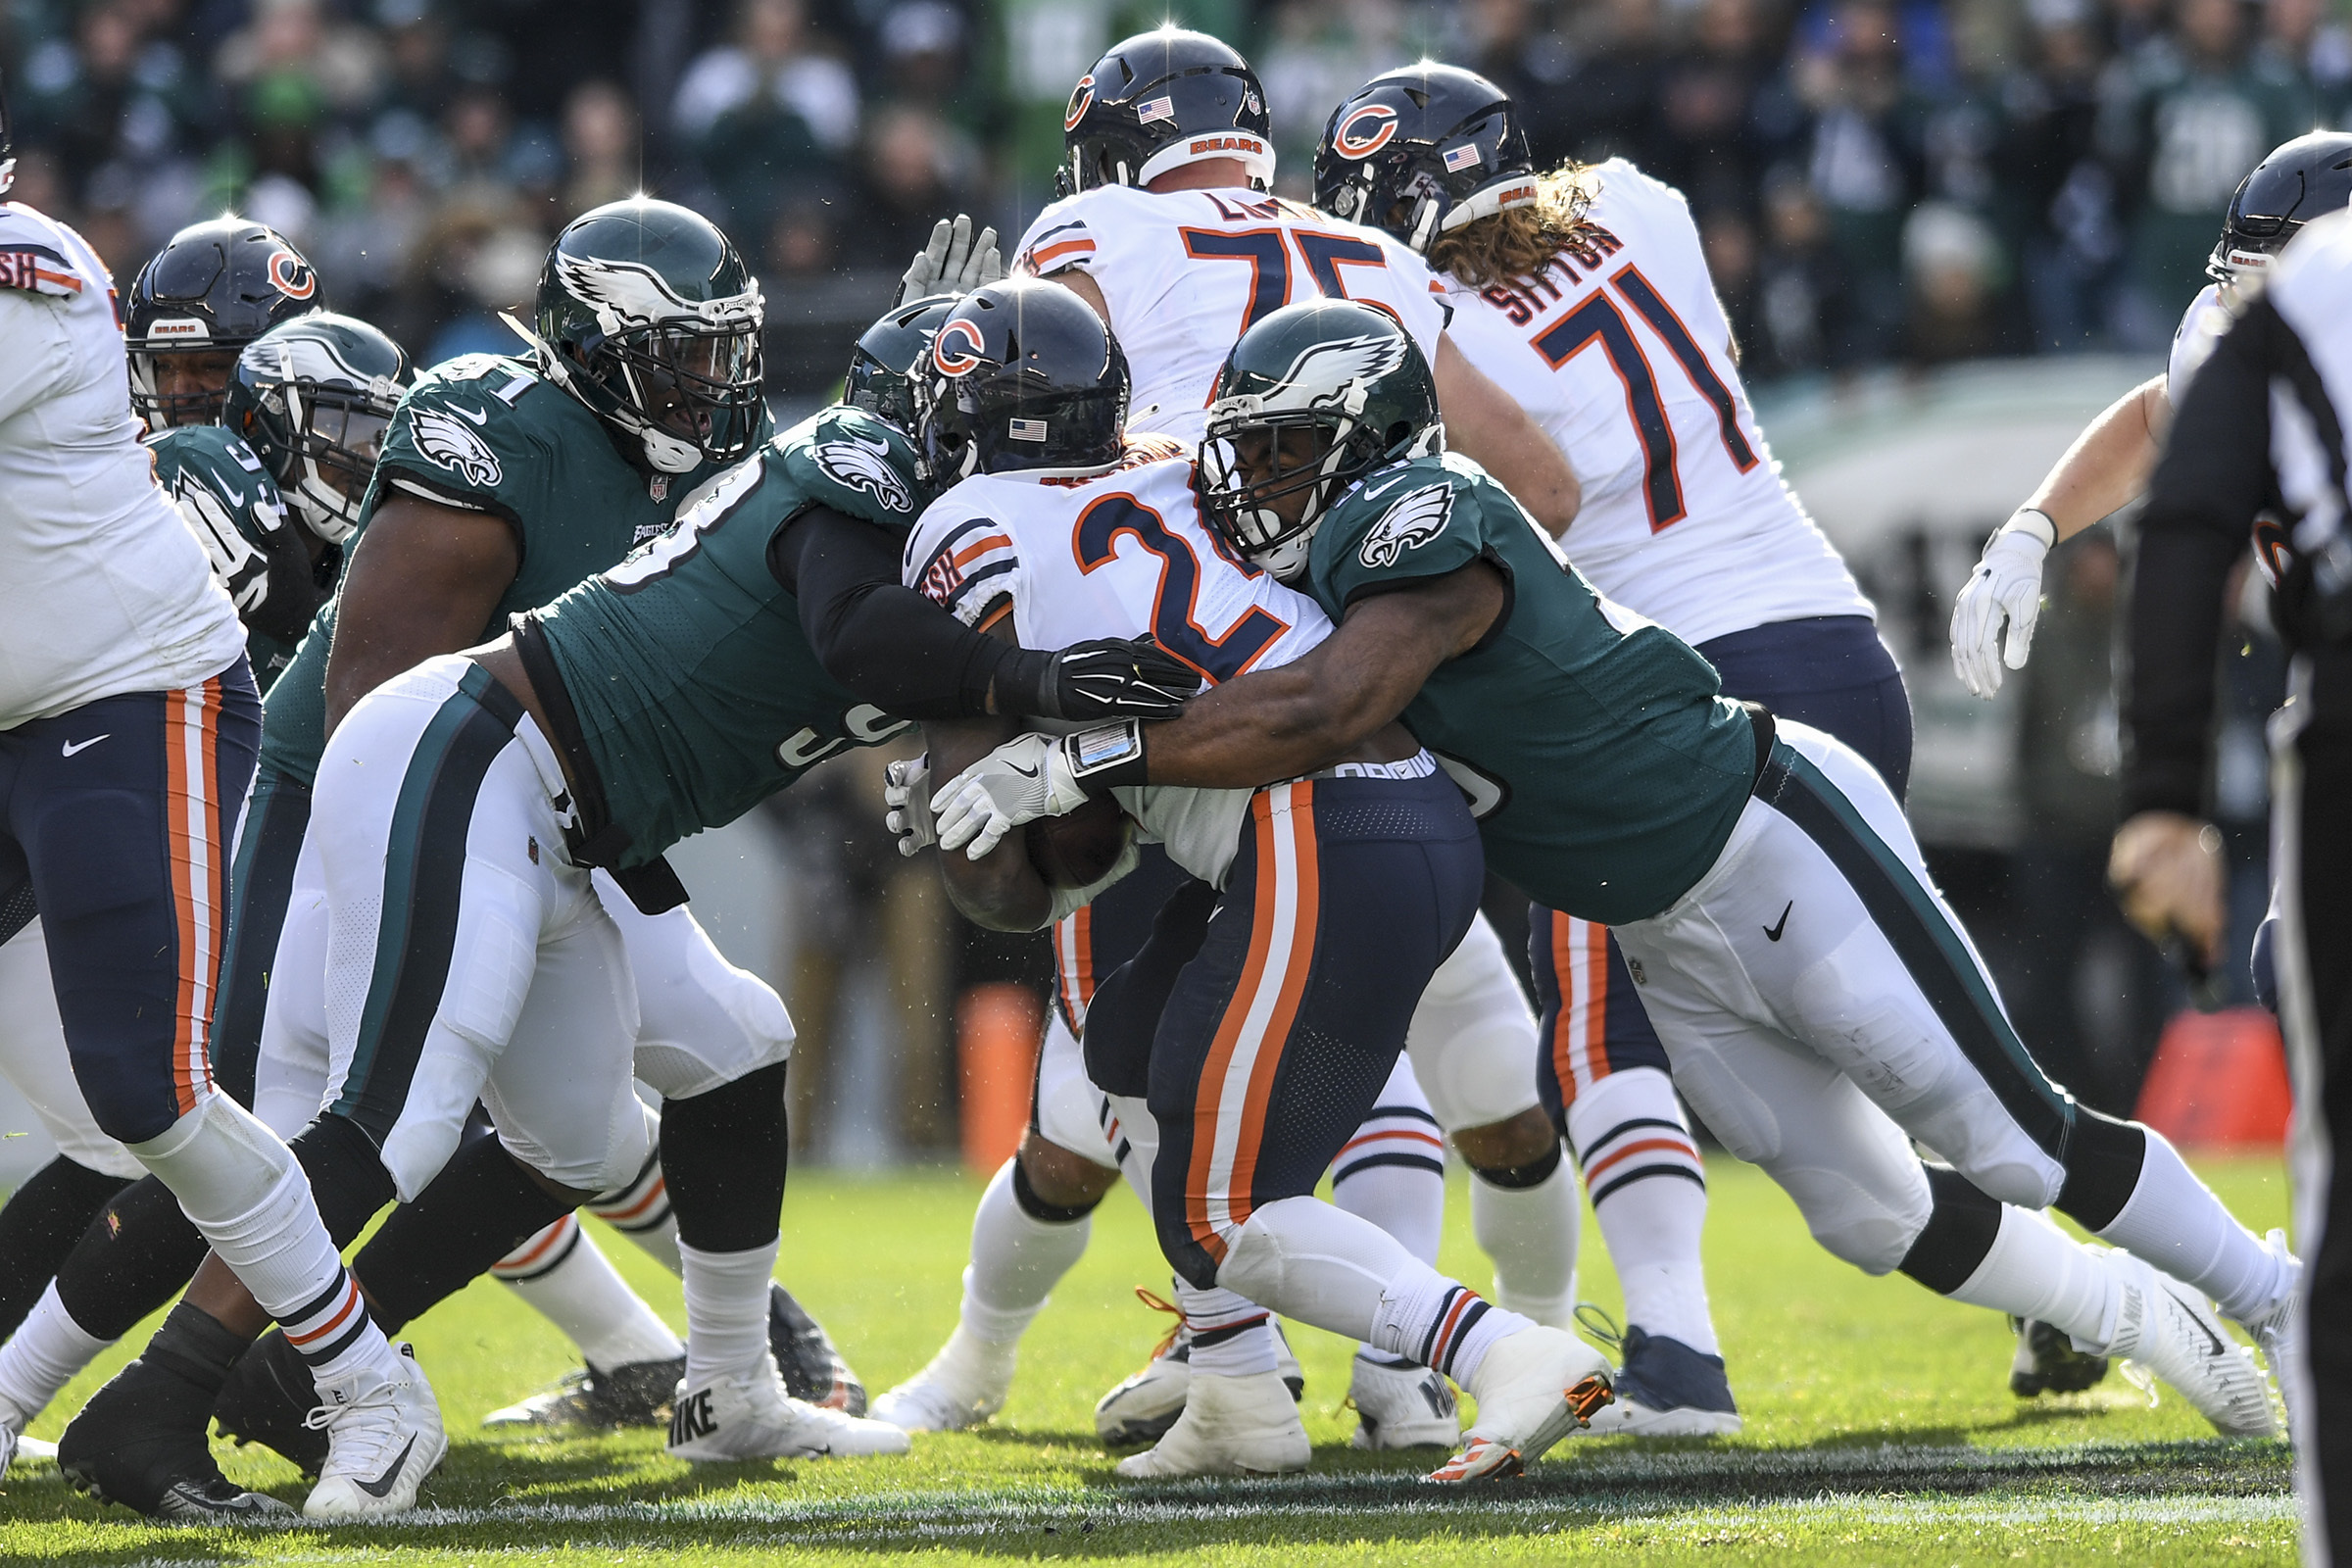 Eagles defensive linemen Tim Jernigan (left) and Brandon Graham (right) stop Chicago running back Jordan Howard for a 1-yard loss on 3rd and 2 in the 1st quarter of the game November 26, 2017 at Lincoln Financial Field. Eagles won 31-3. CLEM MURRAY / Staff Photographer